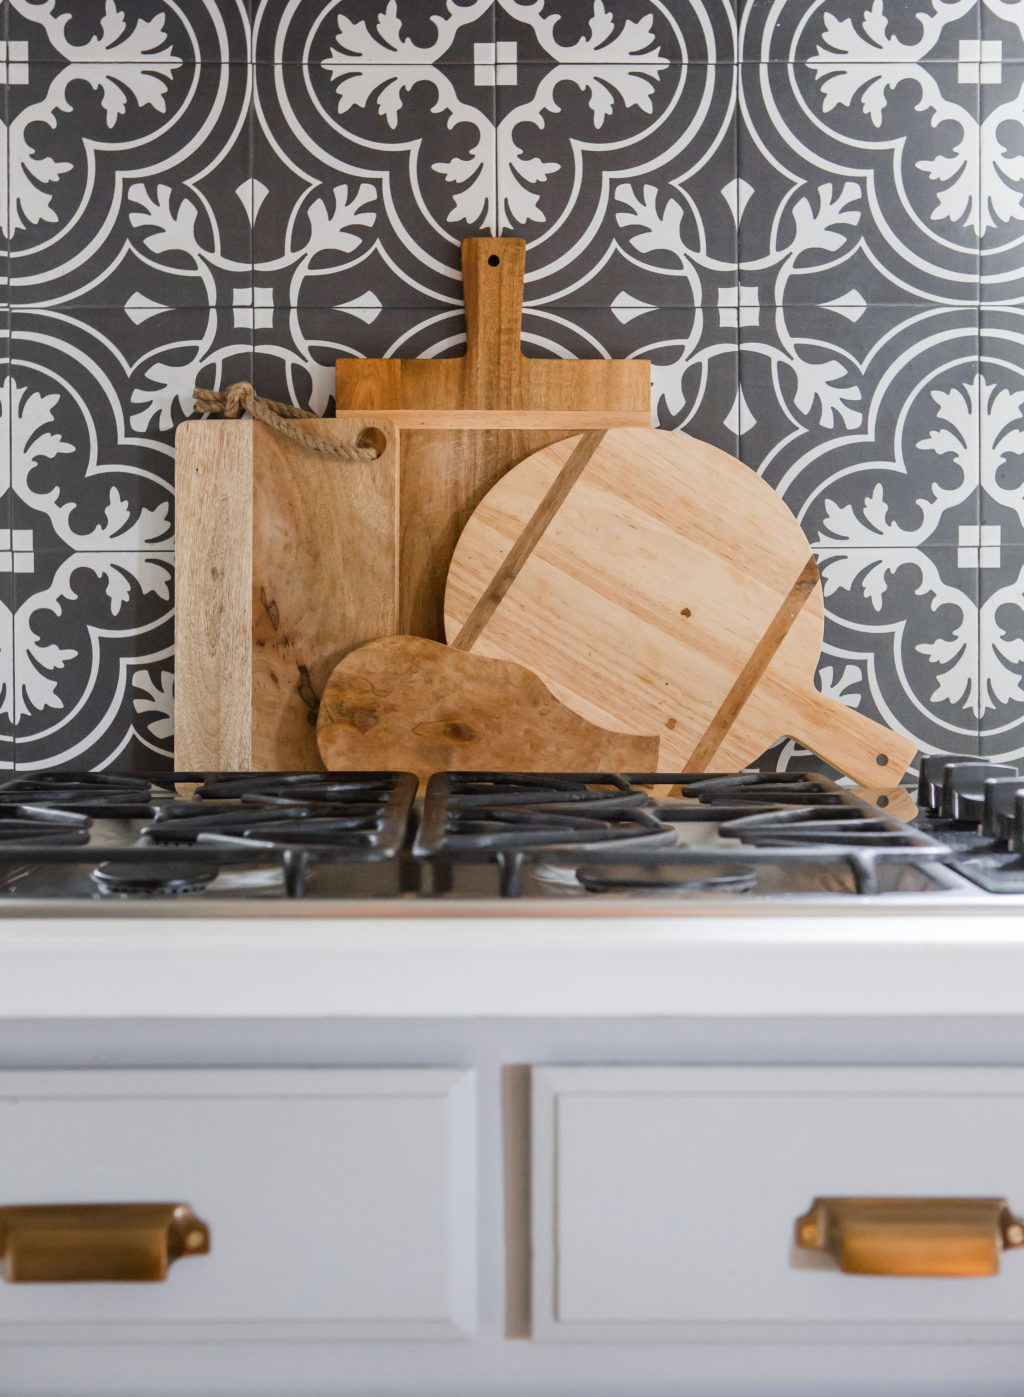 serving and cutting boards on kitchen countertop